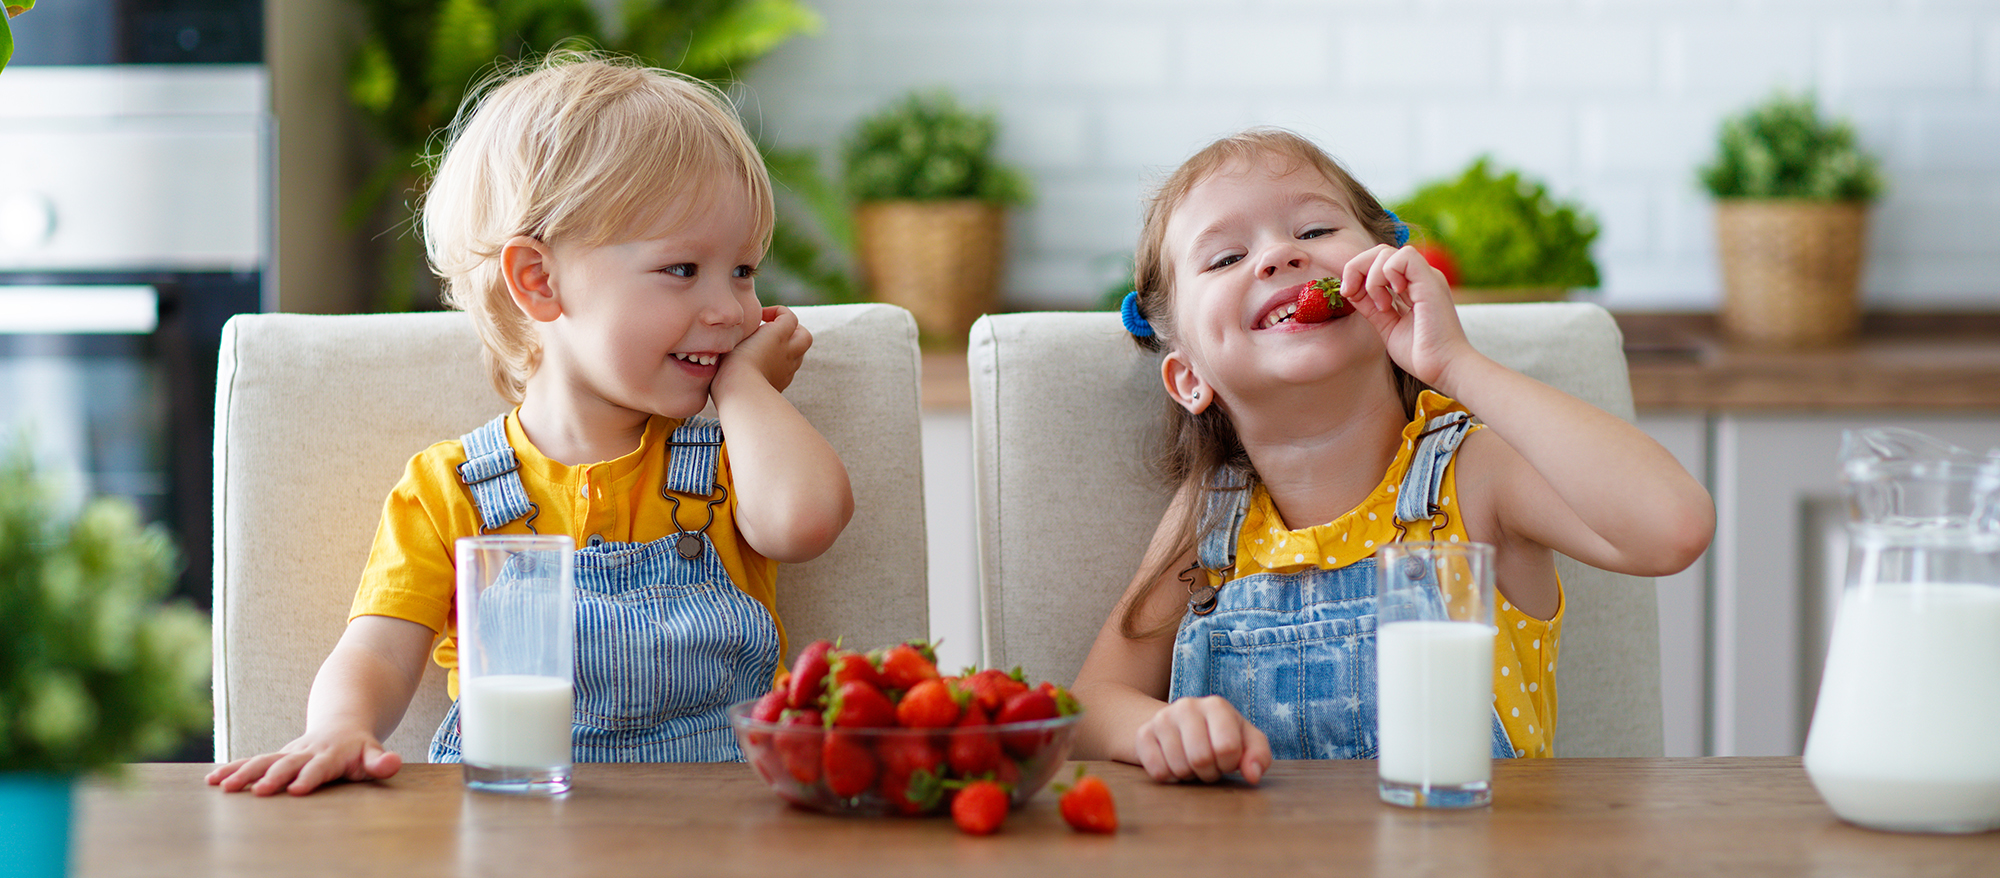 Happy brother and sister eating strawberries with milk